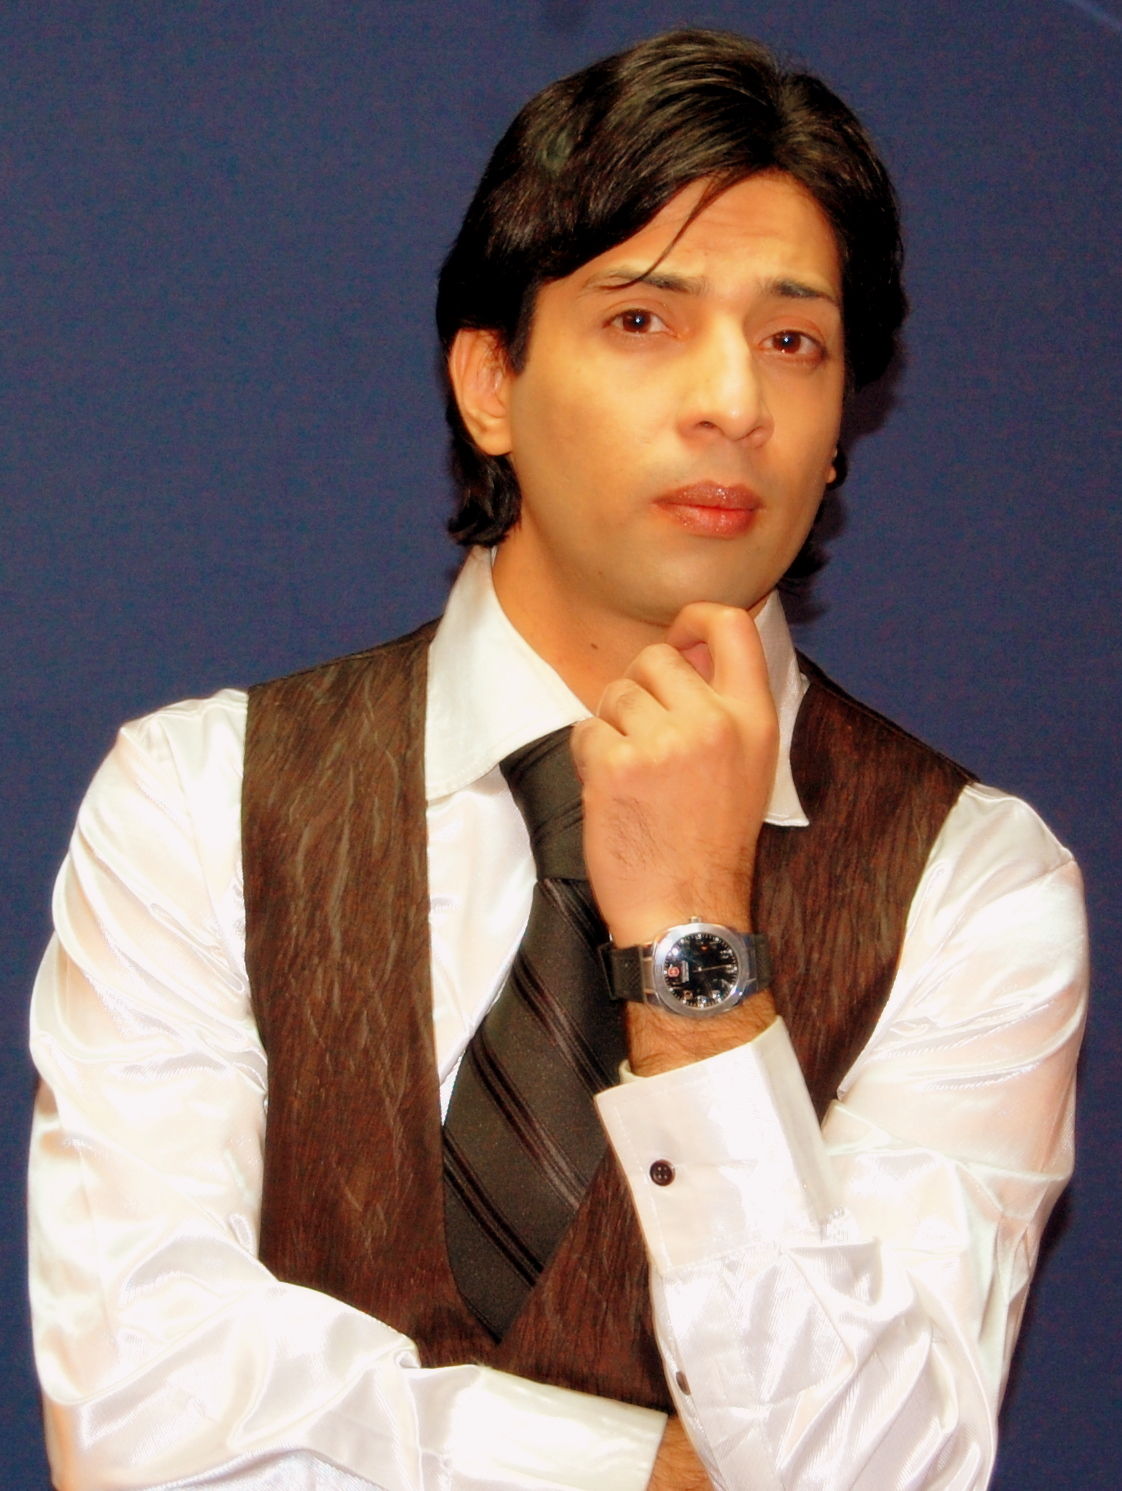 Skd aryan khan celebrity afghan actor and singer images collection